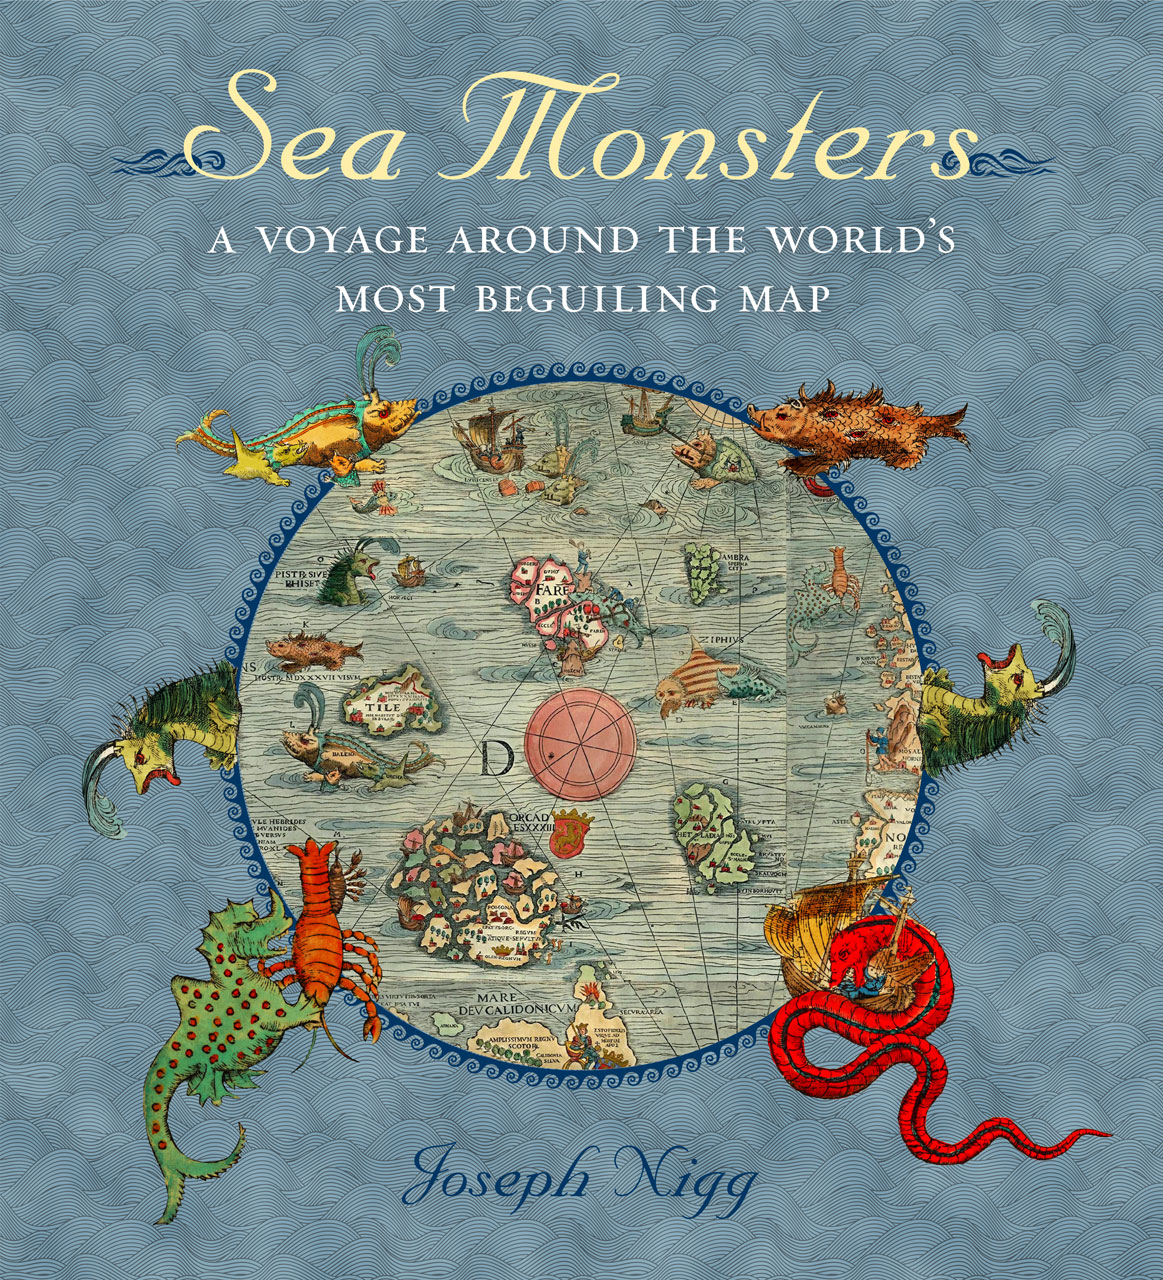 Sea monsters a voyage around the worlds most beguiling map nigg addthis sharing buttons gumiabroncs Image collections